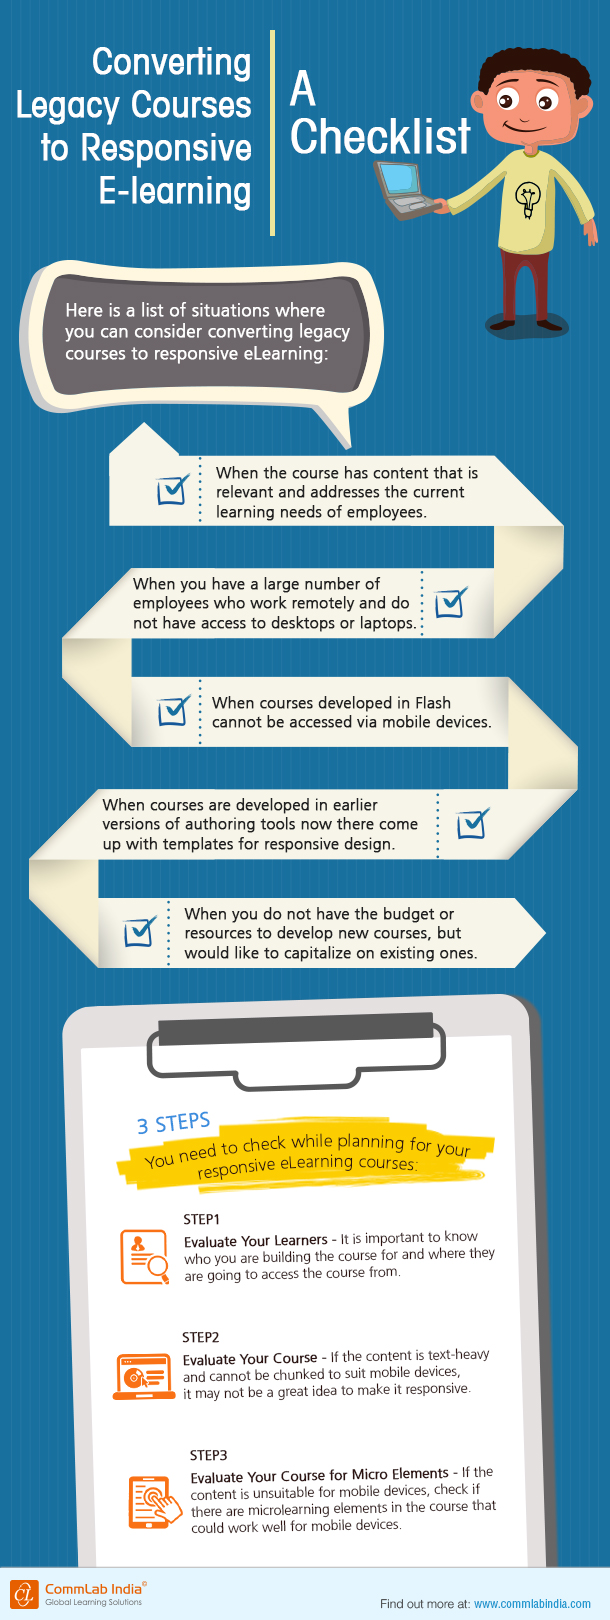 Converting Legacy Courses to Responsive E-learning: A Checklist [Infographic]